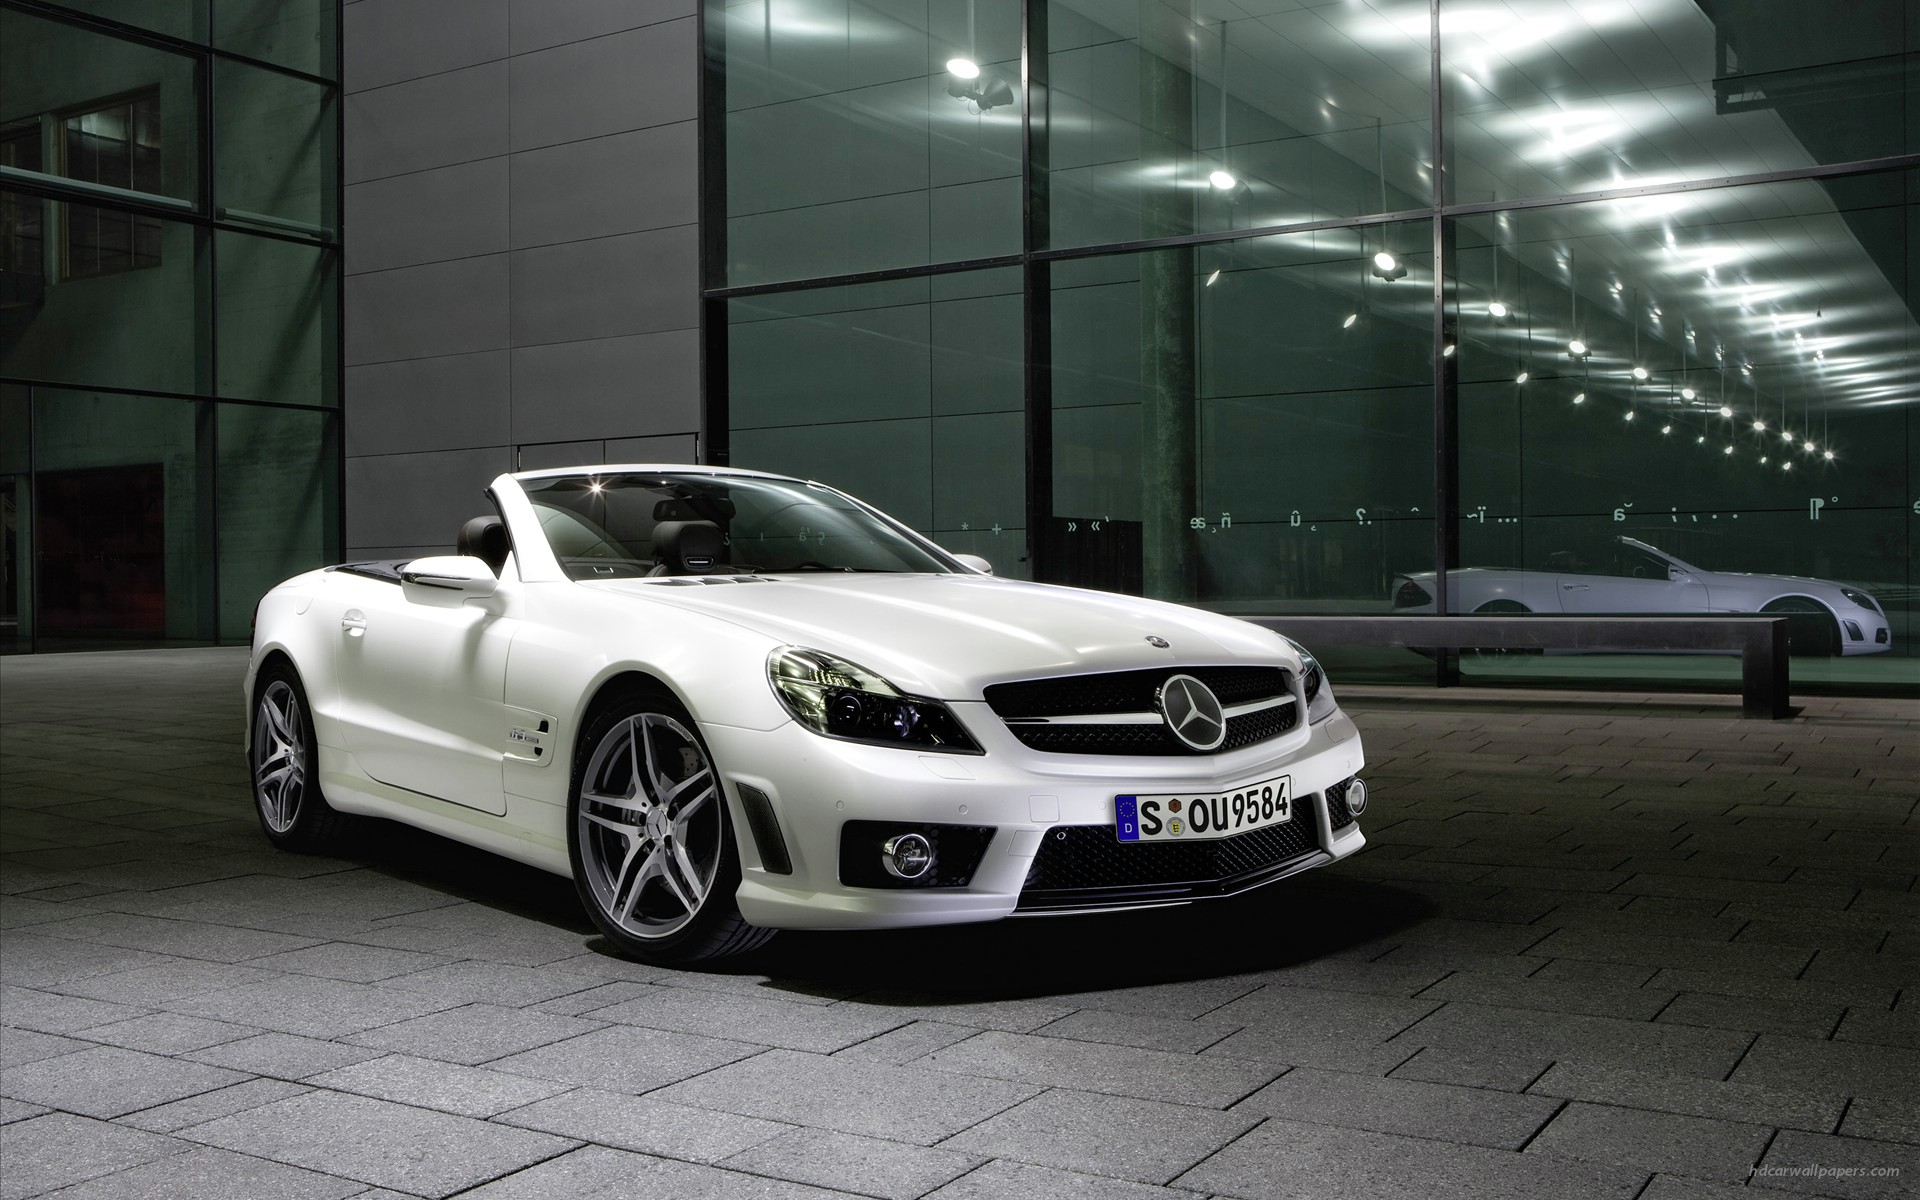 Mercedes Benz SL63 AMG Convertible 2 327.11 Kb